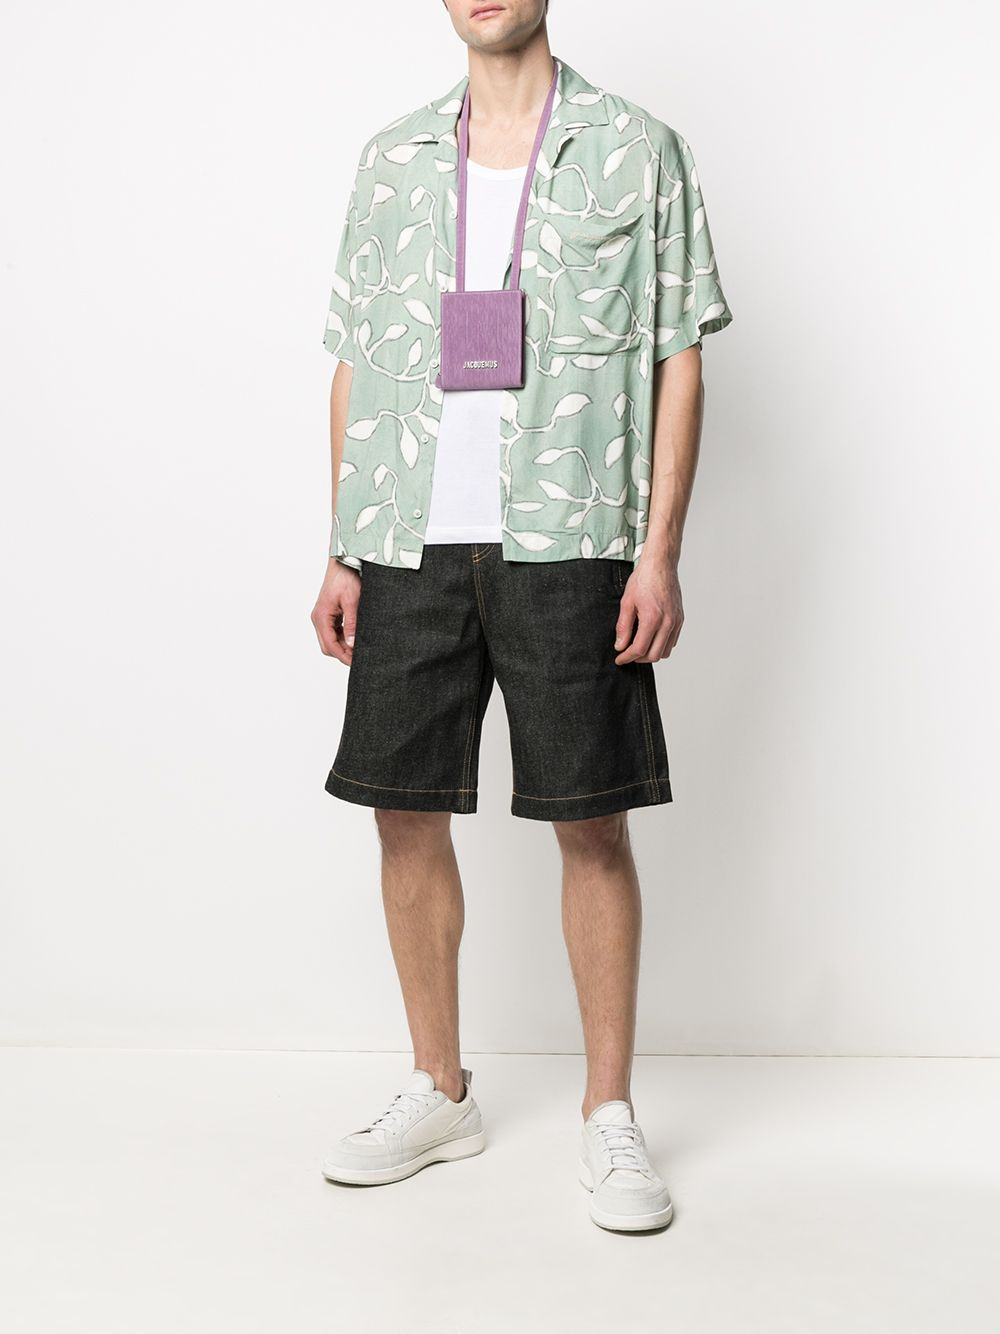 PRINT SHIRT JACQUEMUS | Shirts | 215SH21PRINT GREEN LEAVES